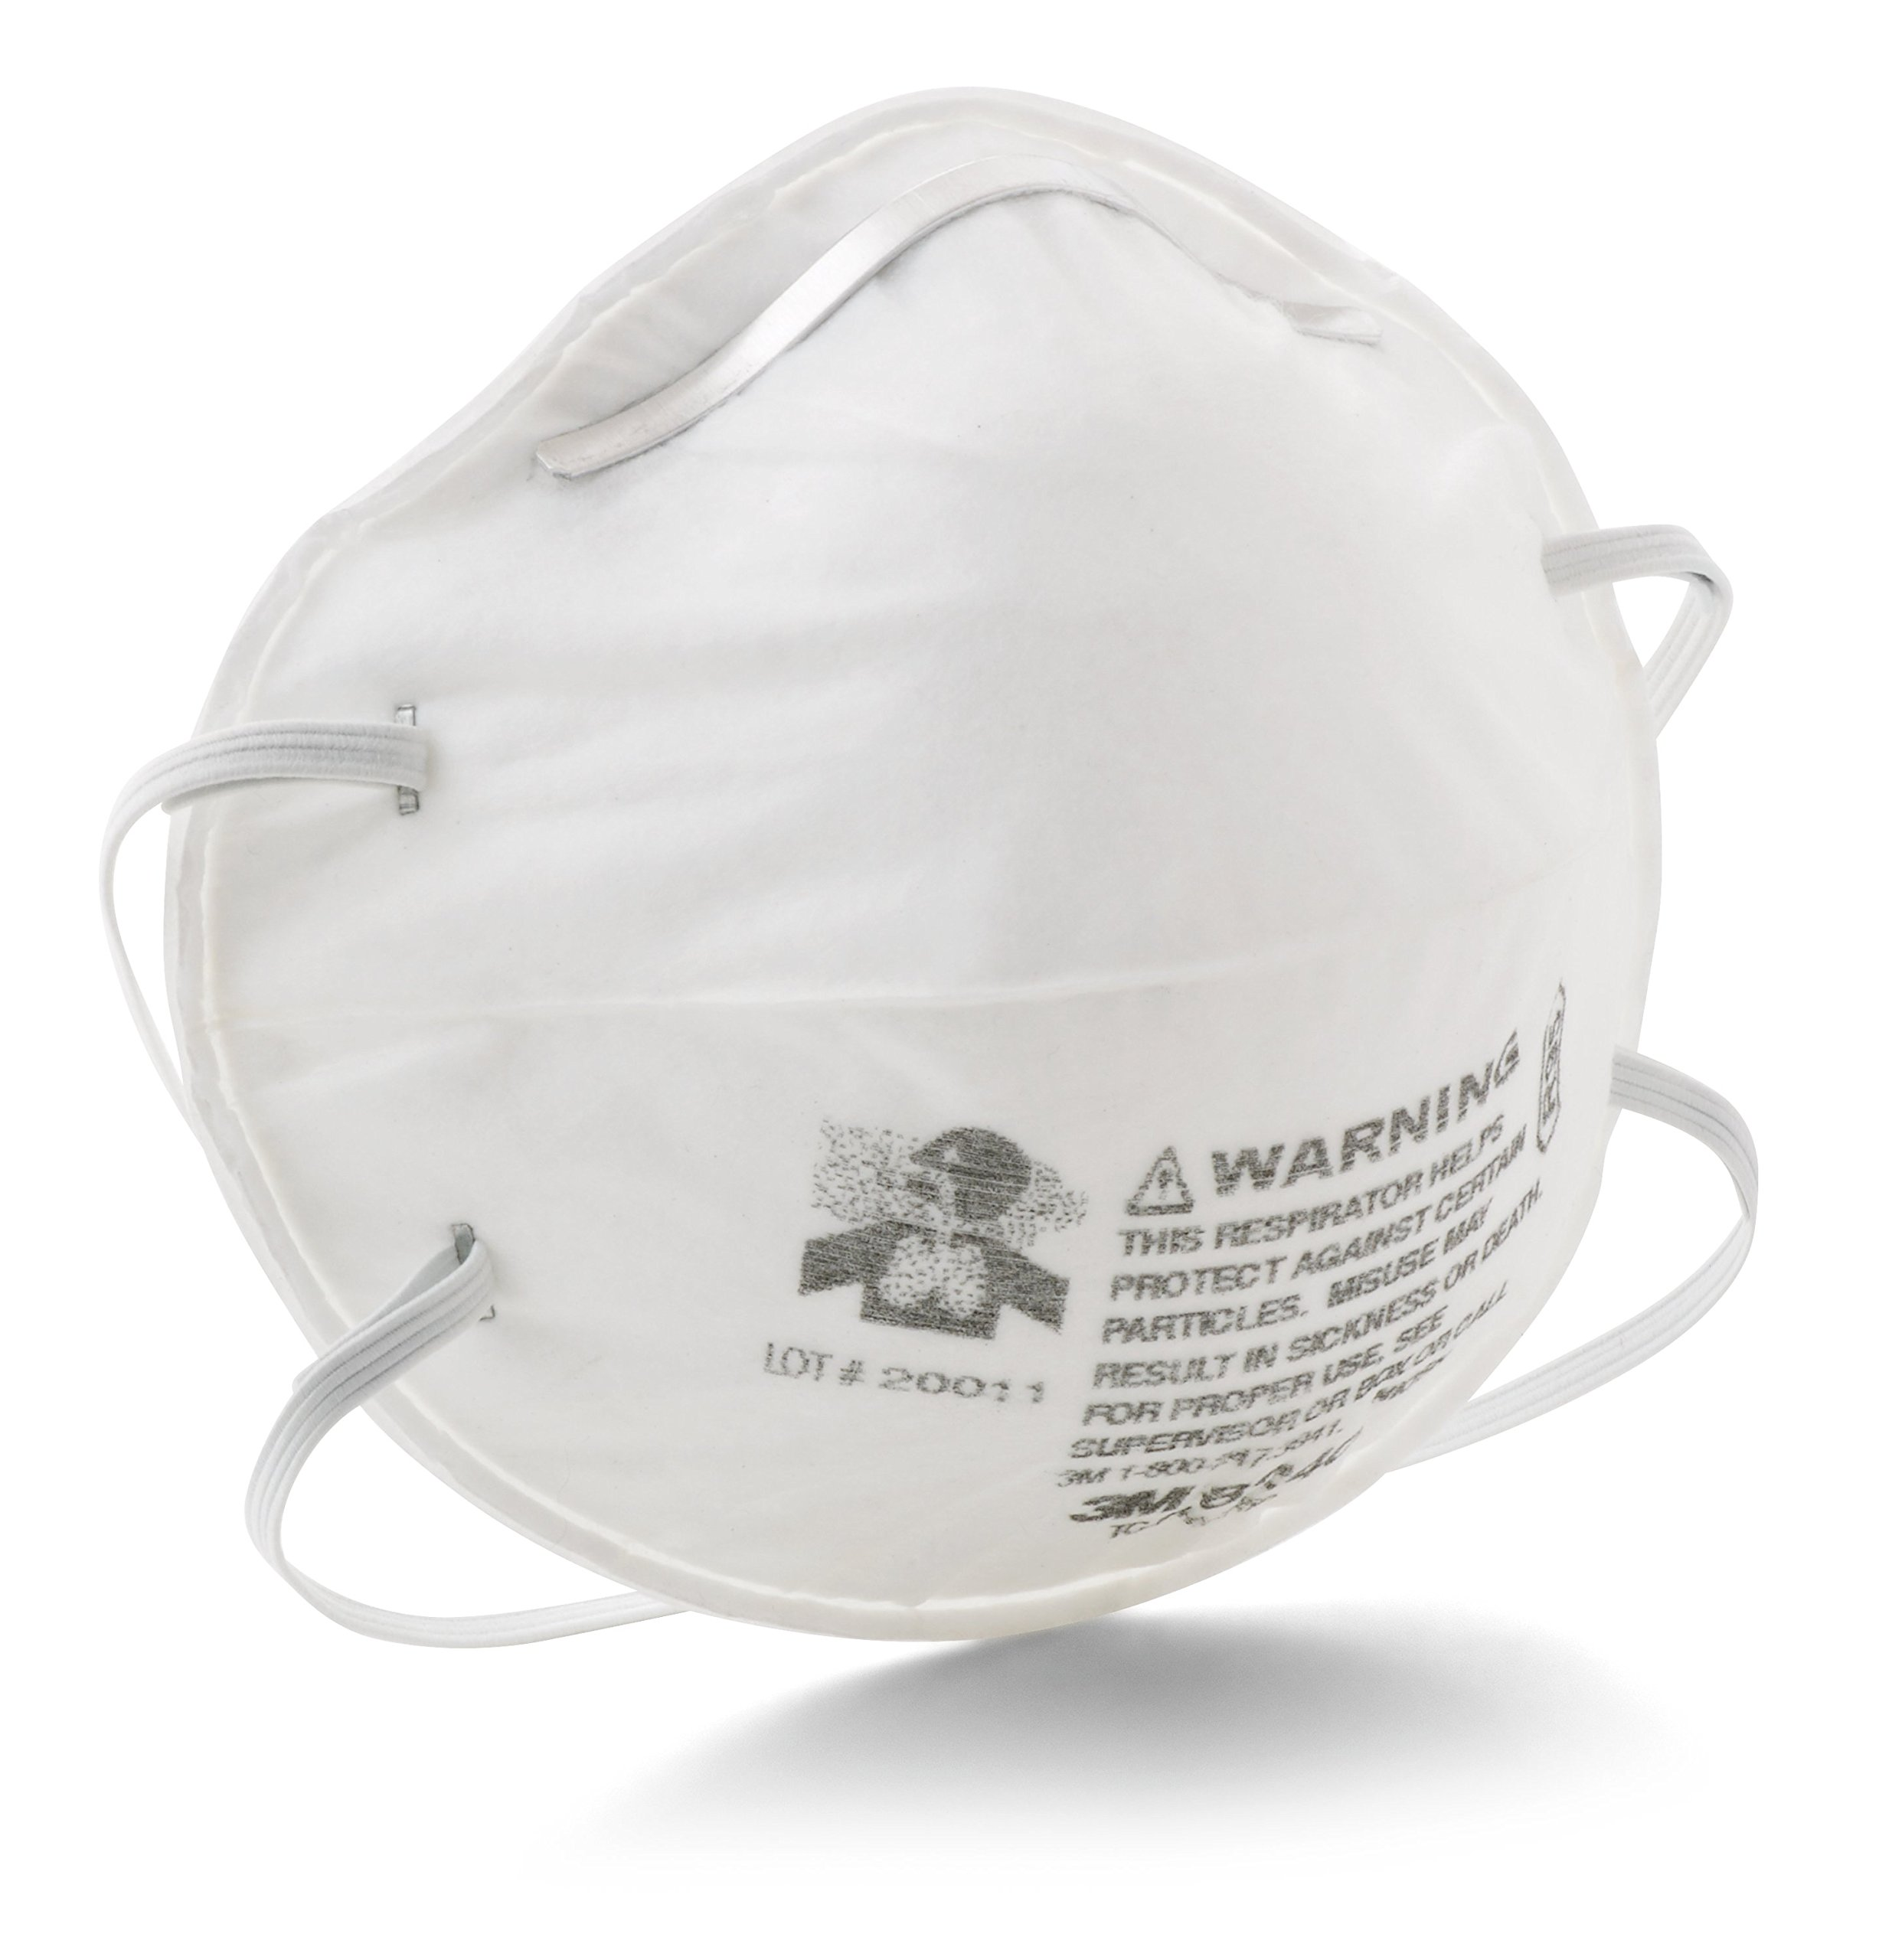 3M Particulate Respirator 8240, R95 by 3M Personal Protective Equipment